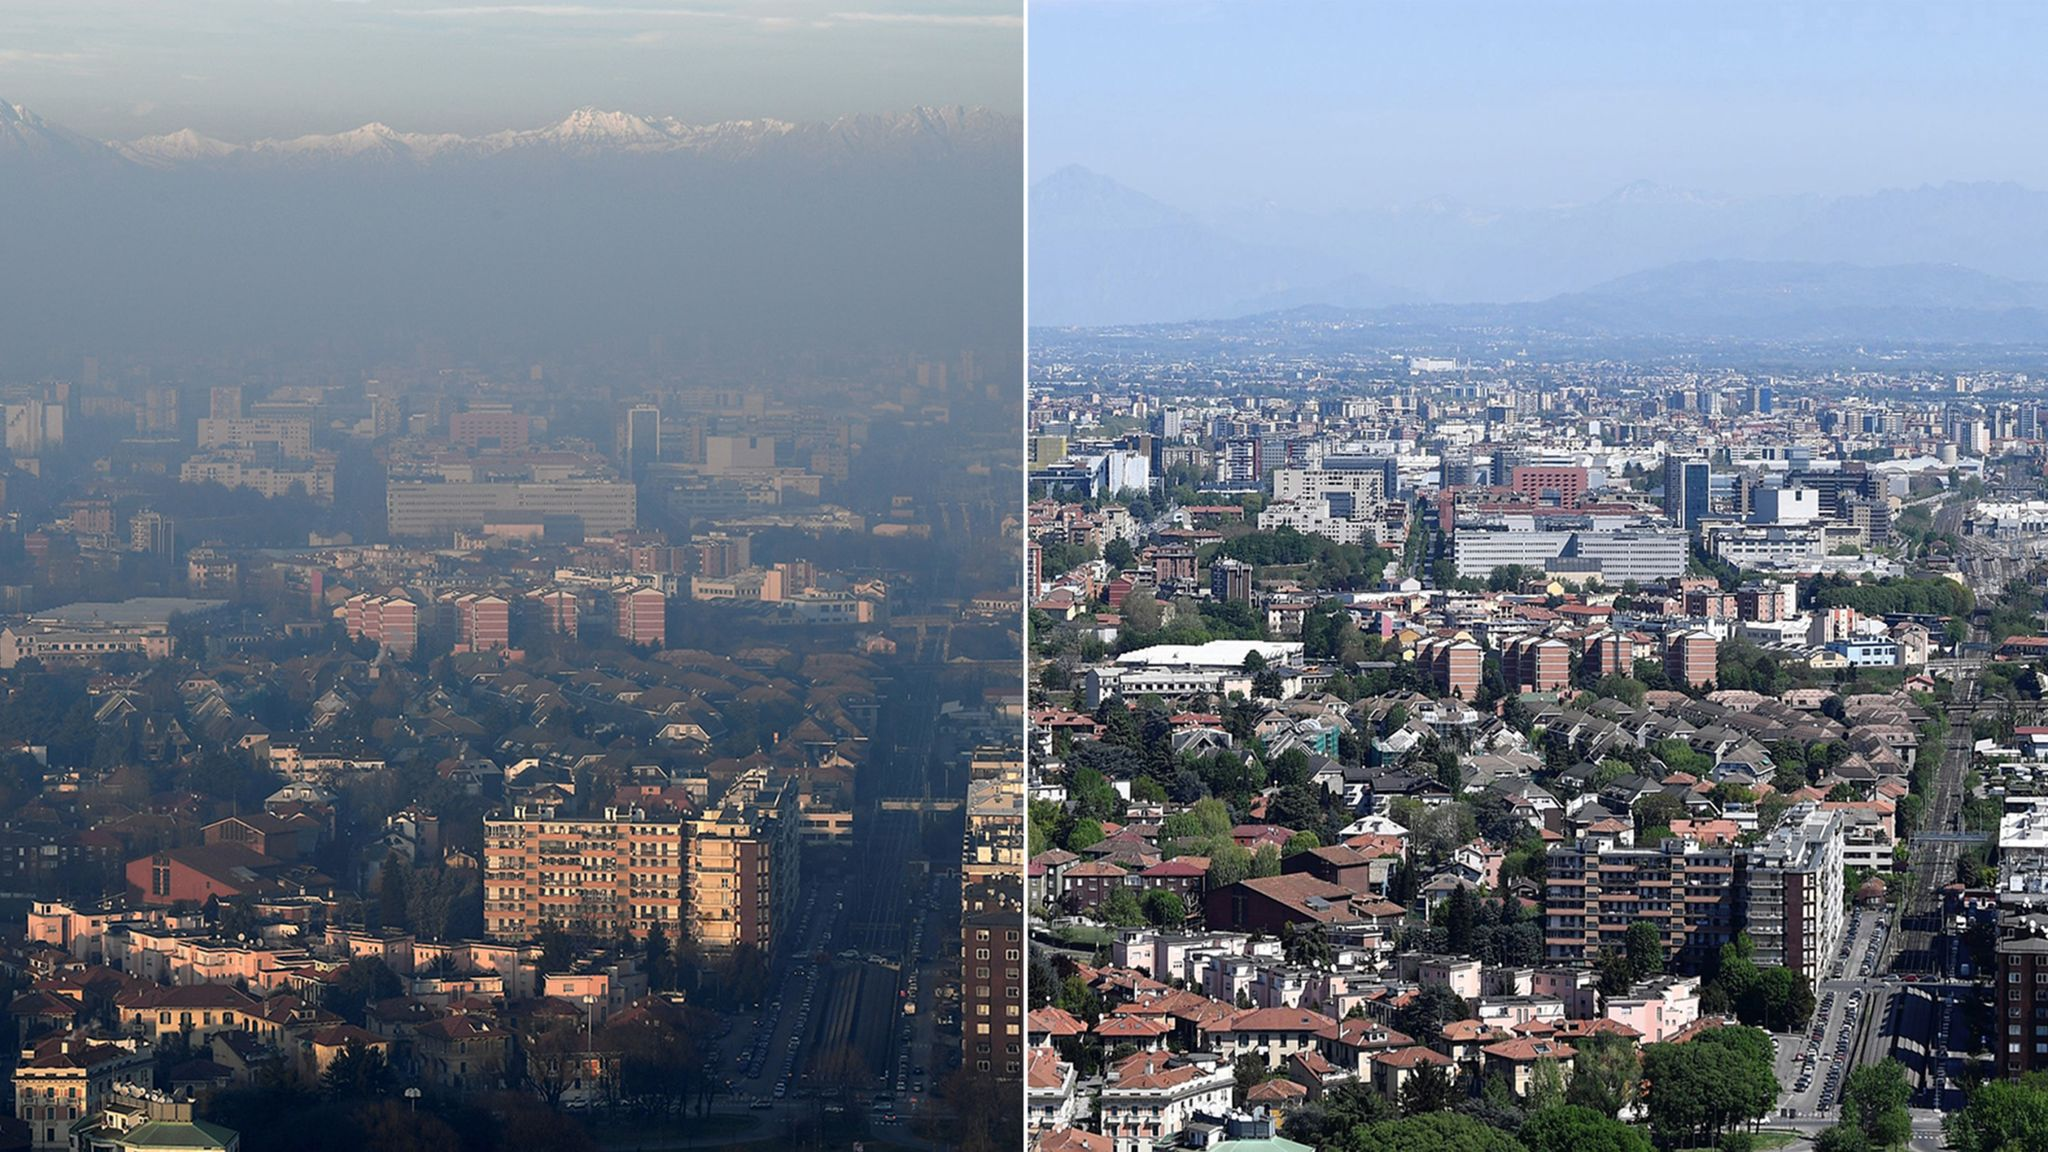 Coronavirus Chased The Smog Away, But For How Long?